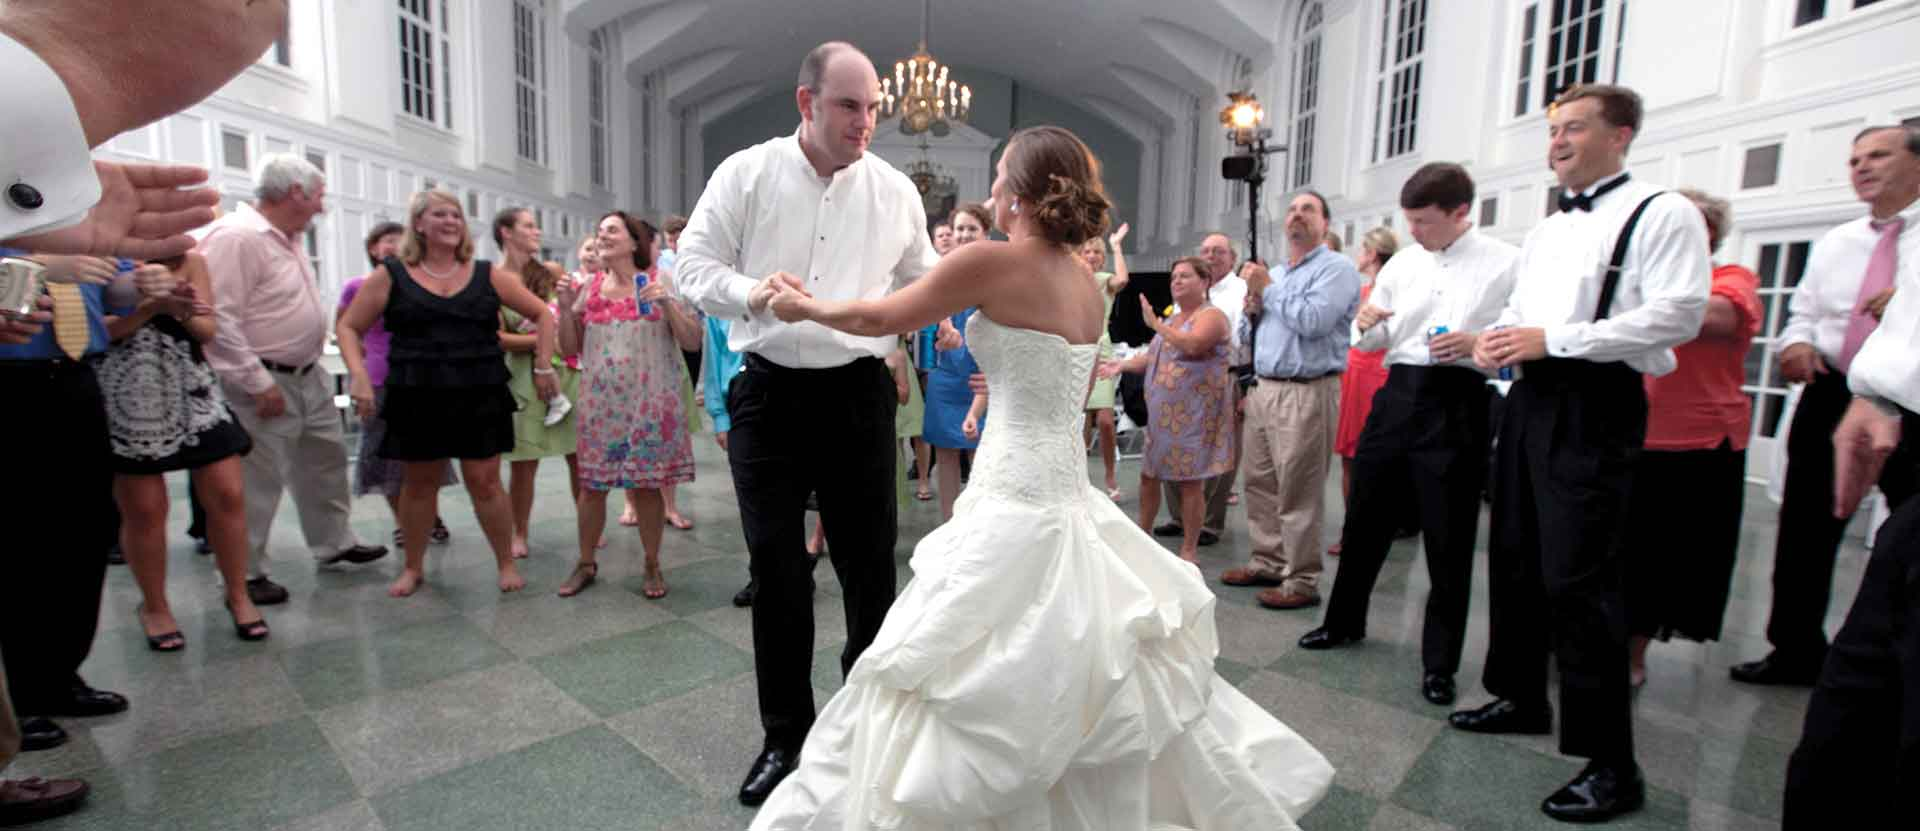 Groom and Bride dancing in the Dining Hall Reception.